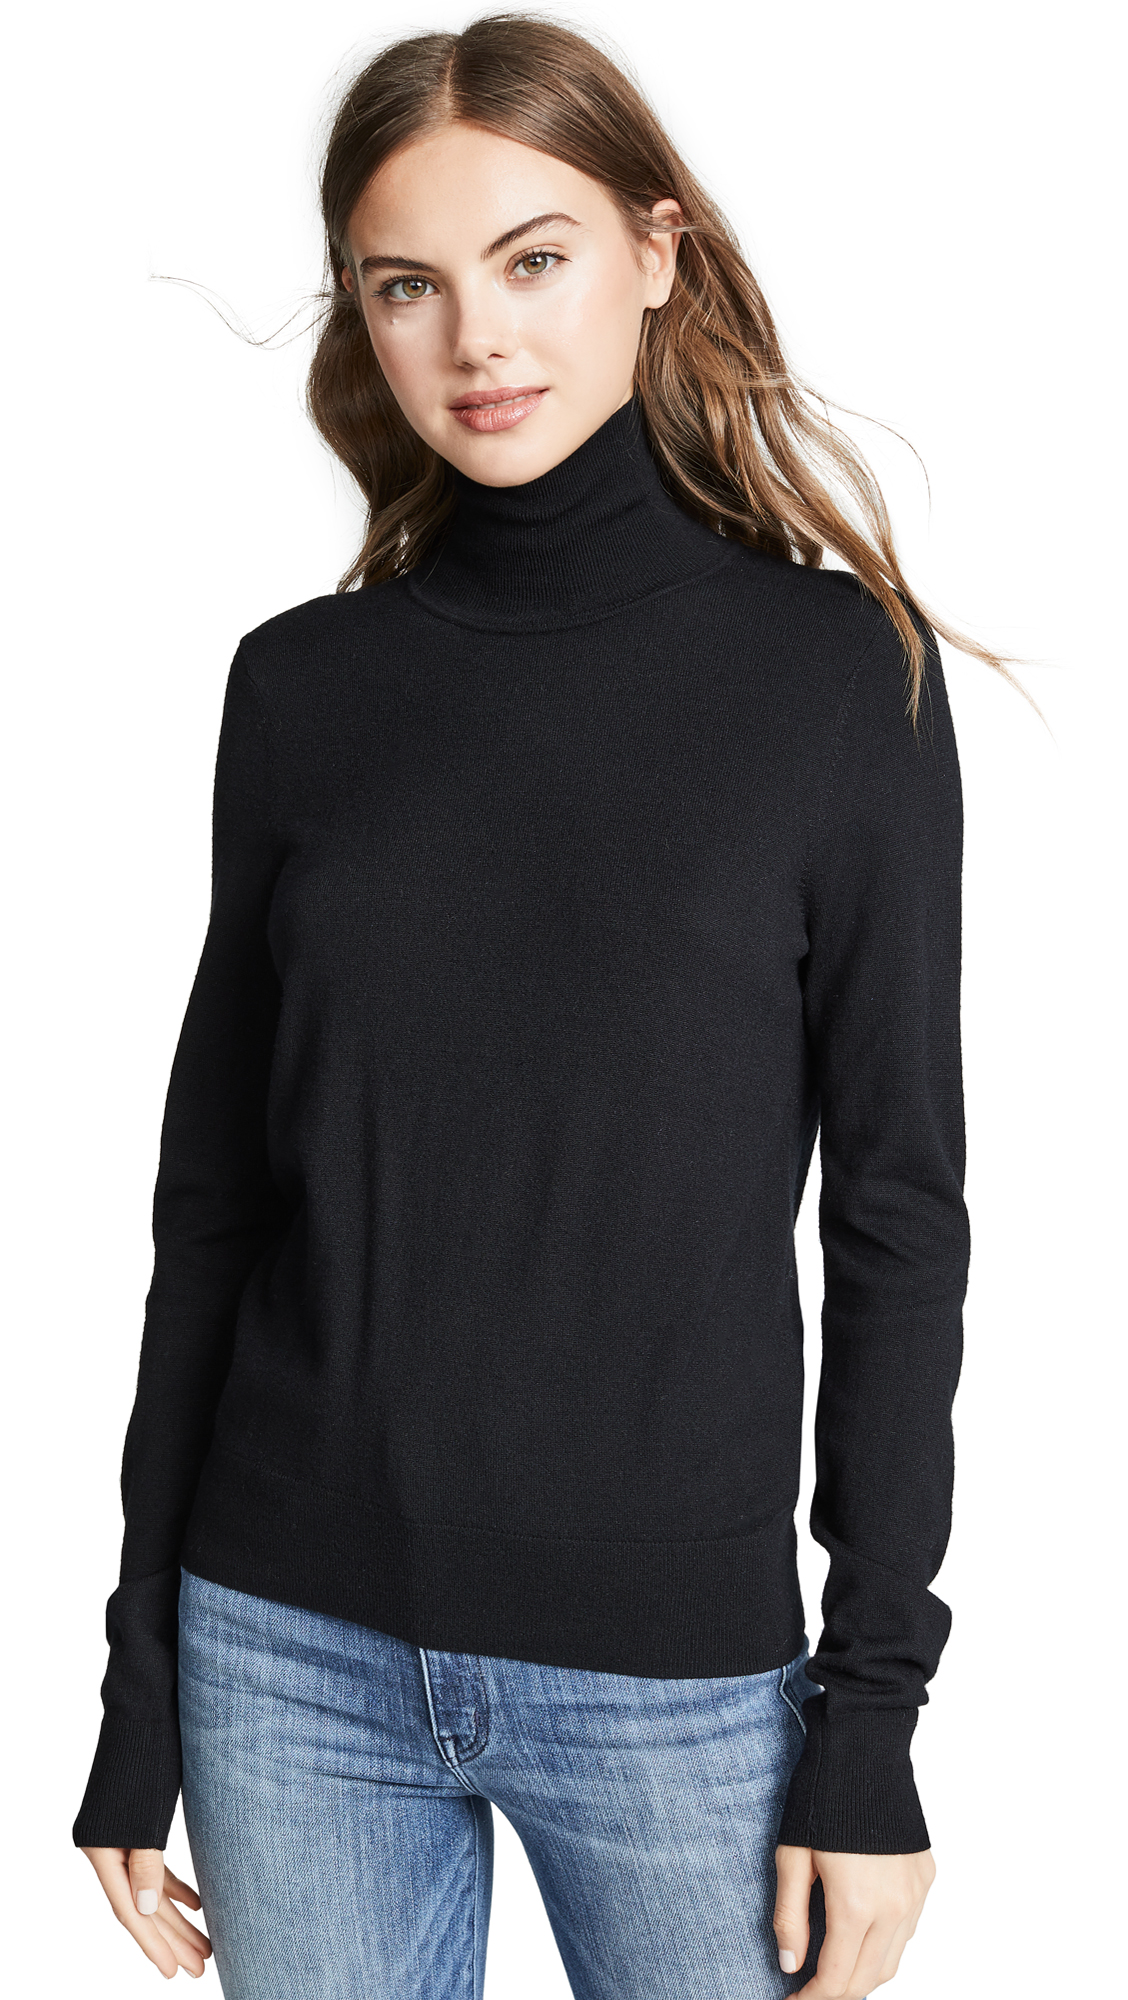 AYR The Hi T Sweater in Black